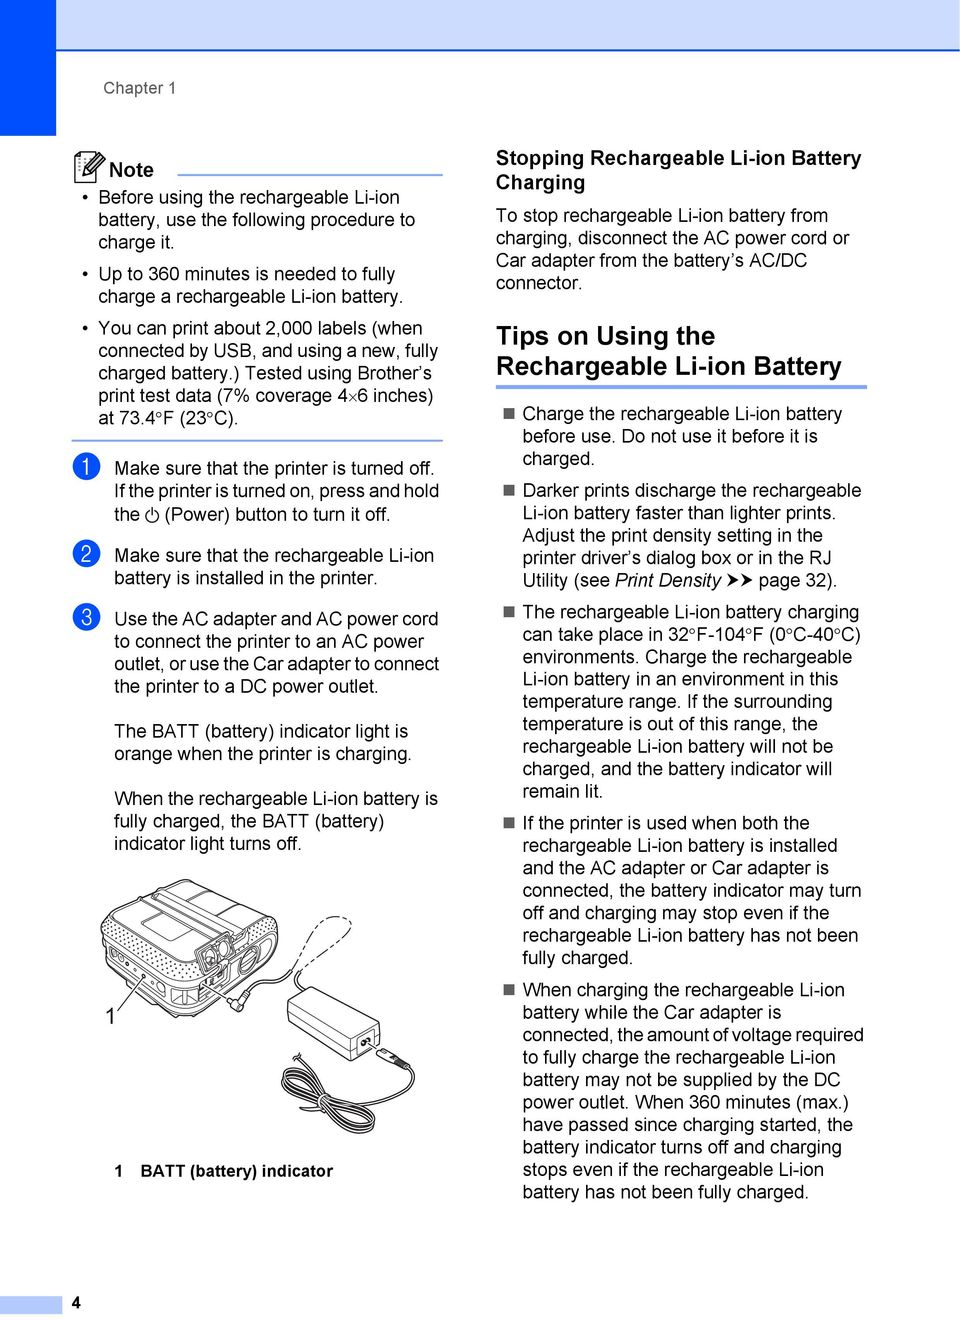 a Make sure that the printer is turned off. If the printer is turned on, press and hold the (Power) button to turn it off. b Make sure that the rechargeable Li-ion battery is installed in the printer.